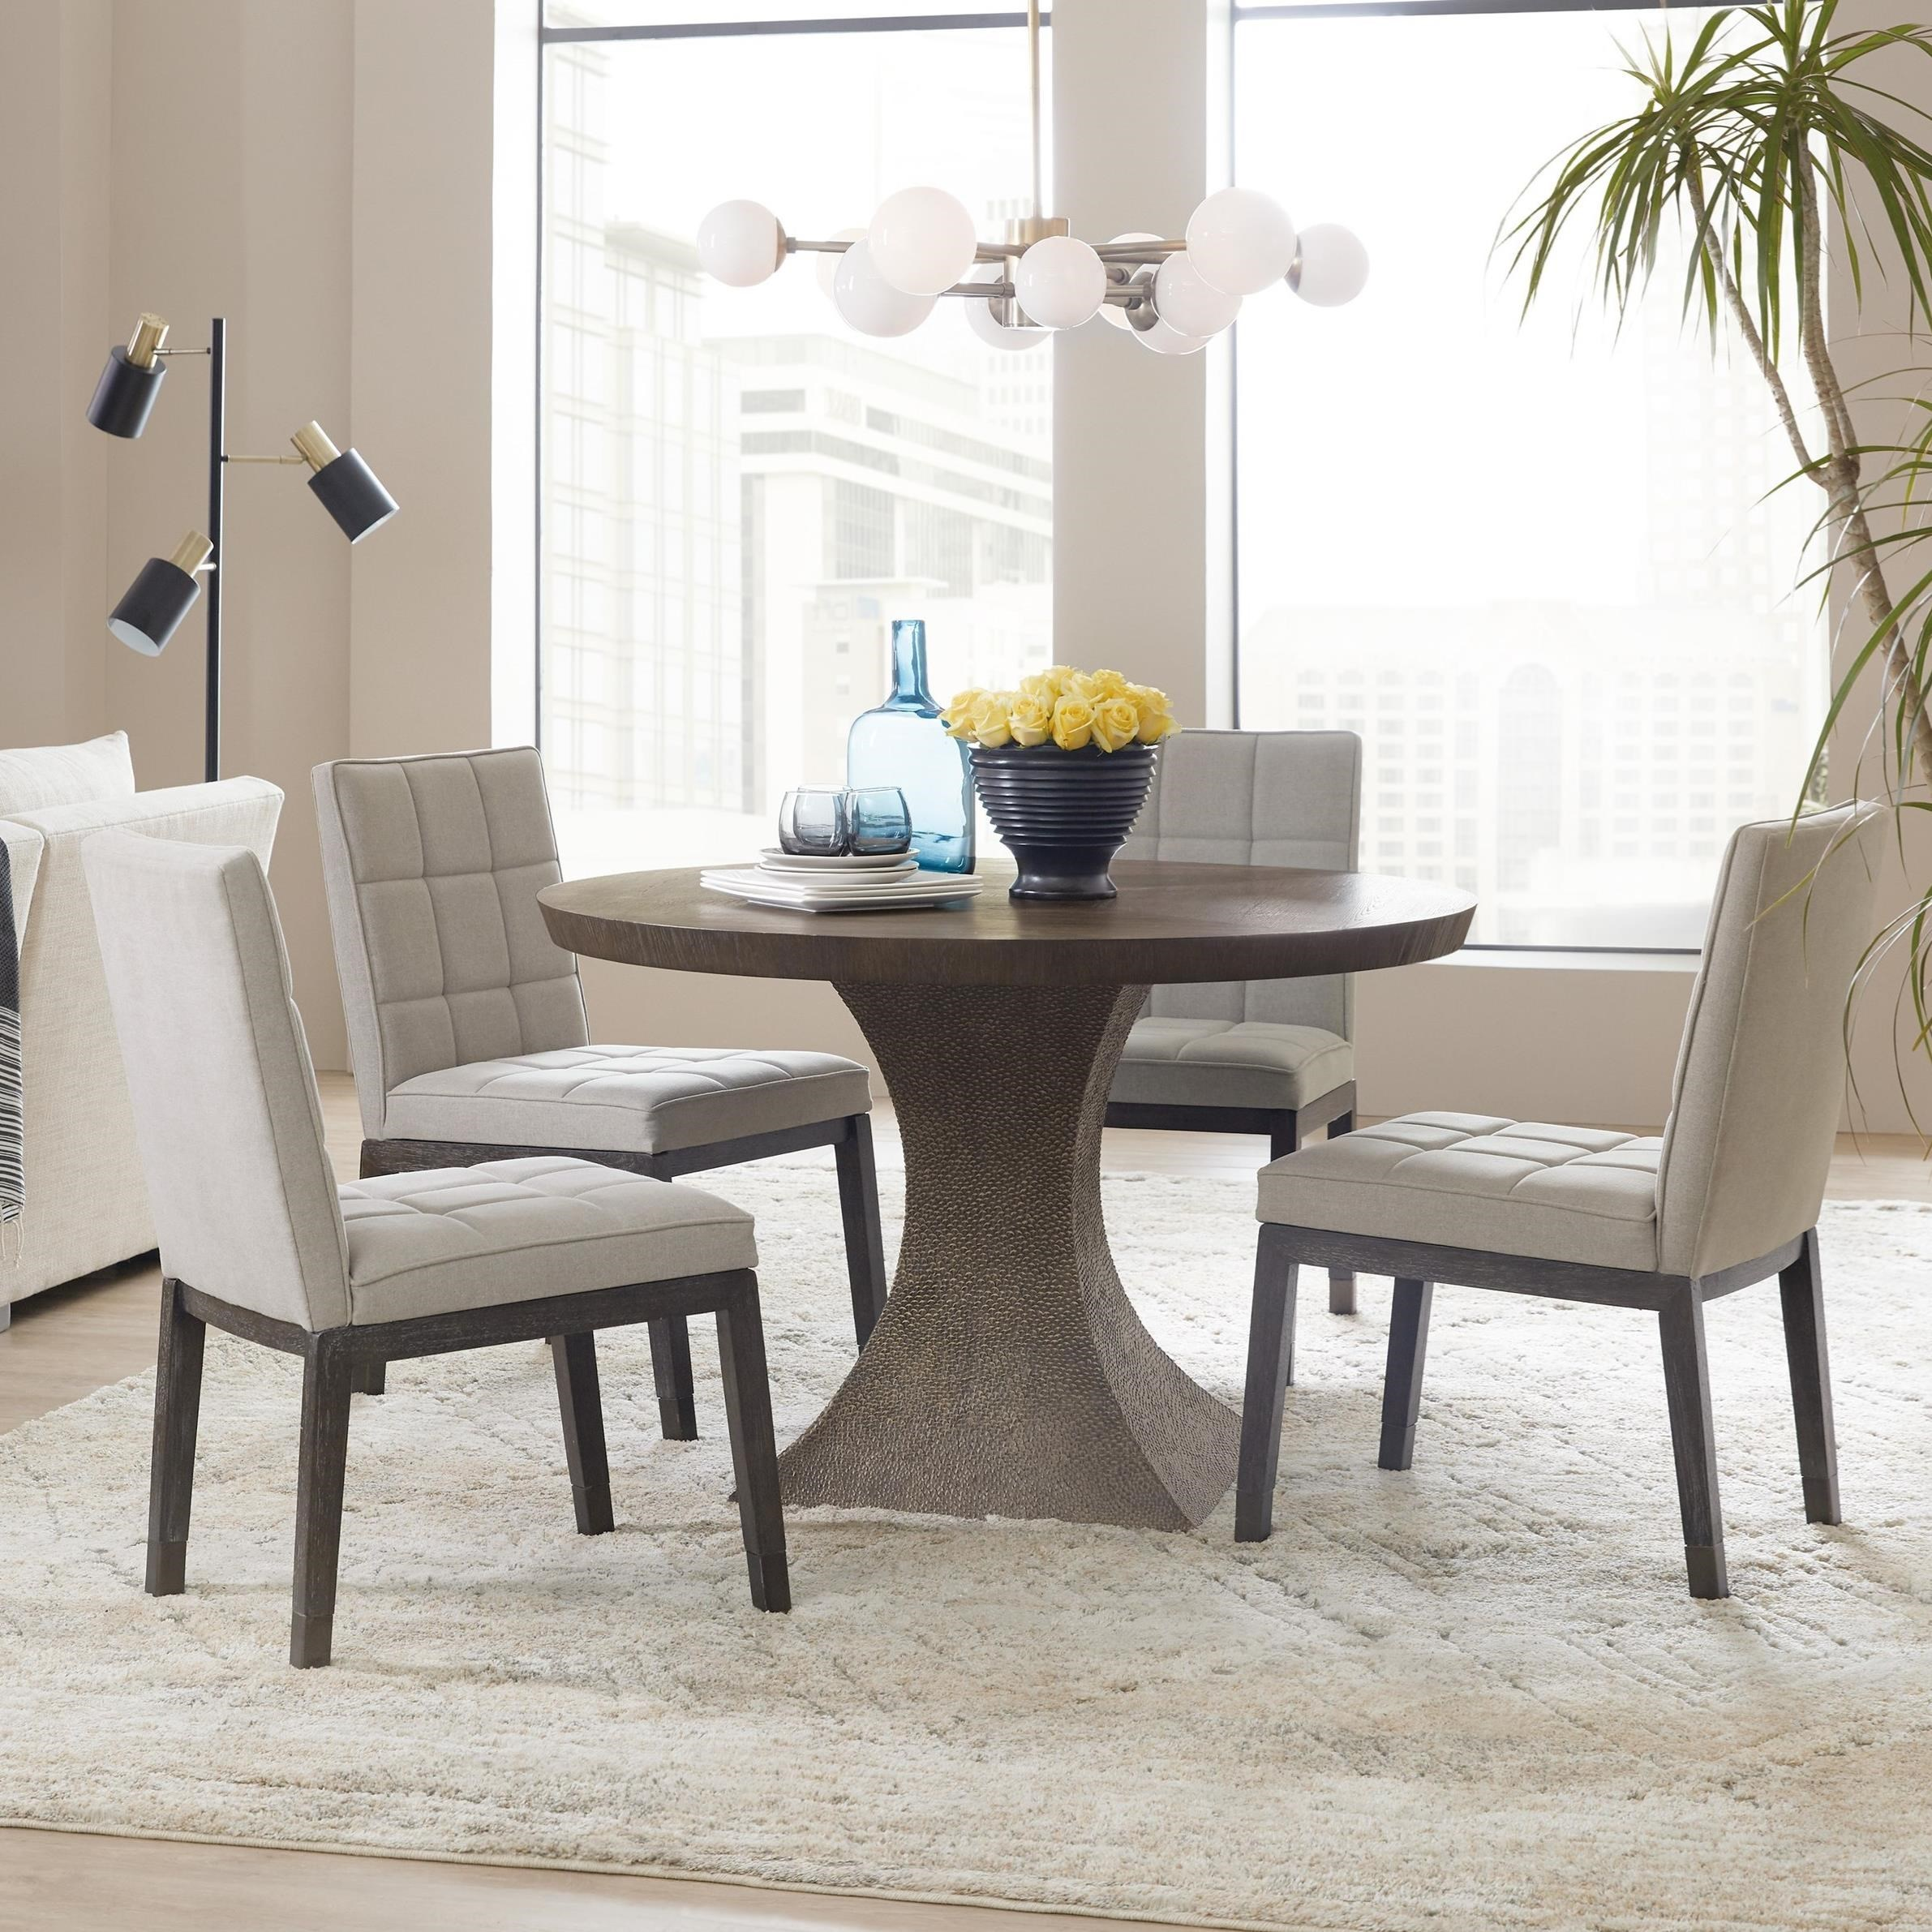 Gentil Hooker Furniture Miramar Aventura 5 Piece Table And Chair Set